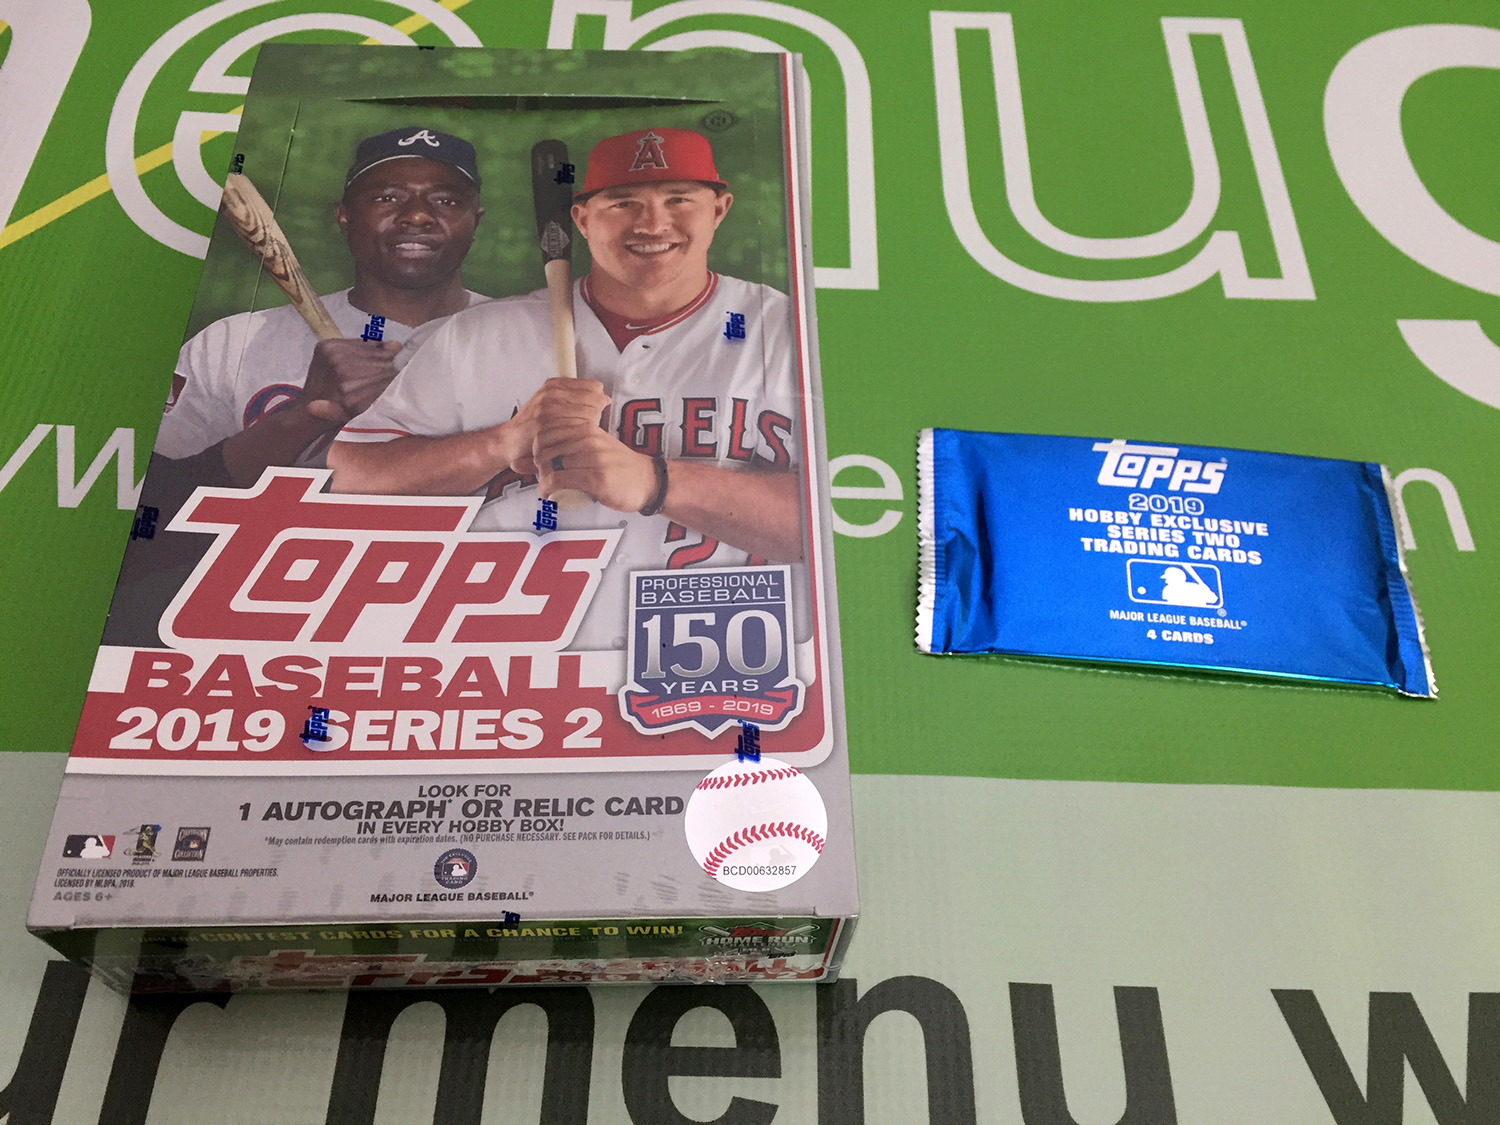 2019 Topps Series 2 Hobby Box + 1 Silver Pack [SEE VIDEO]